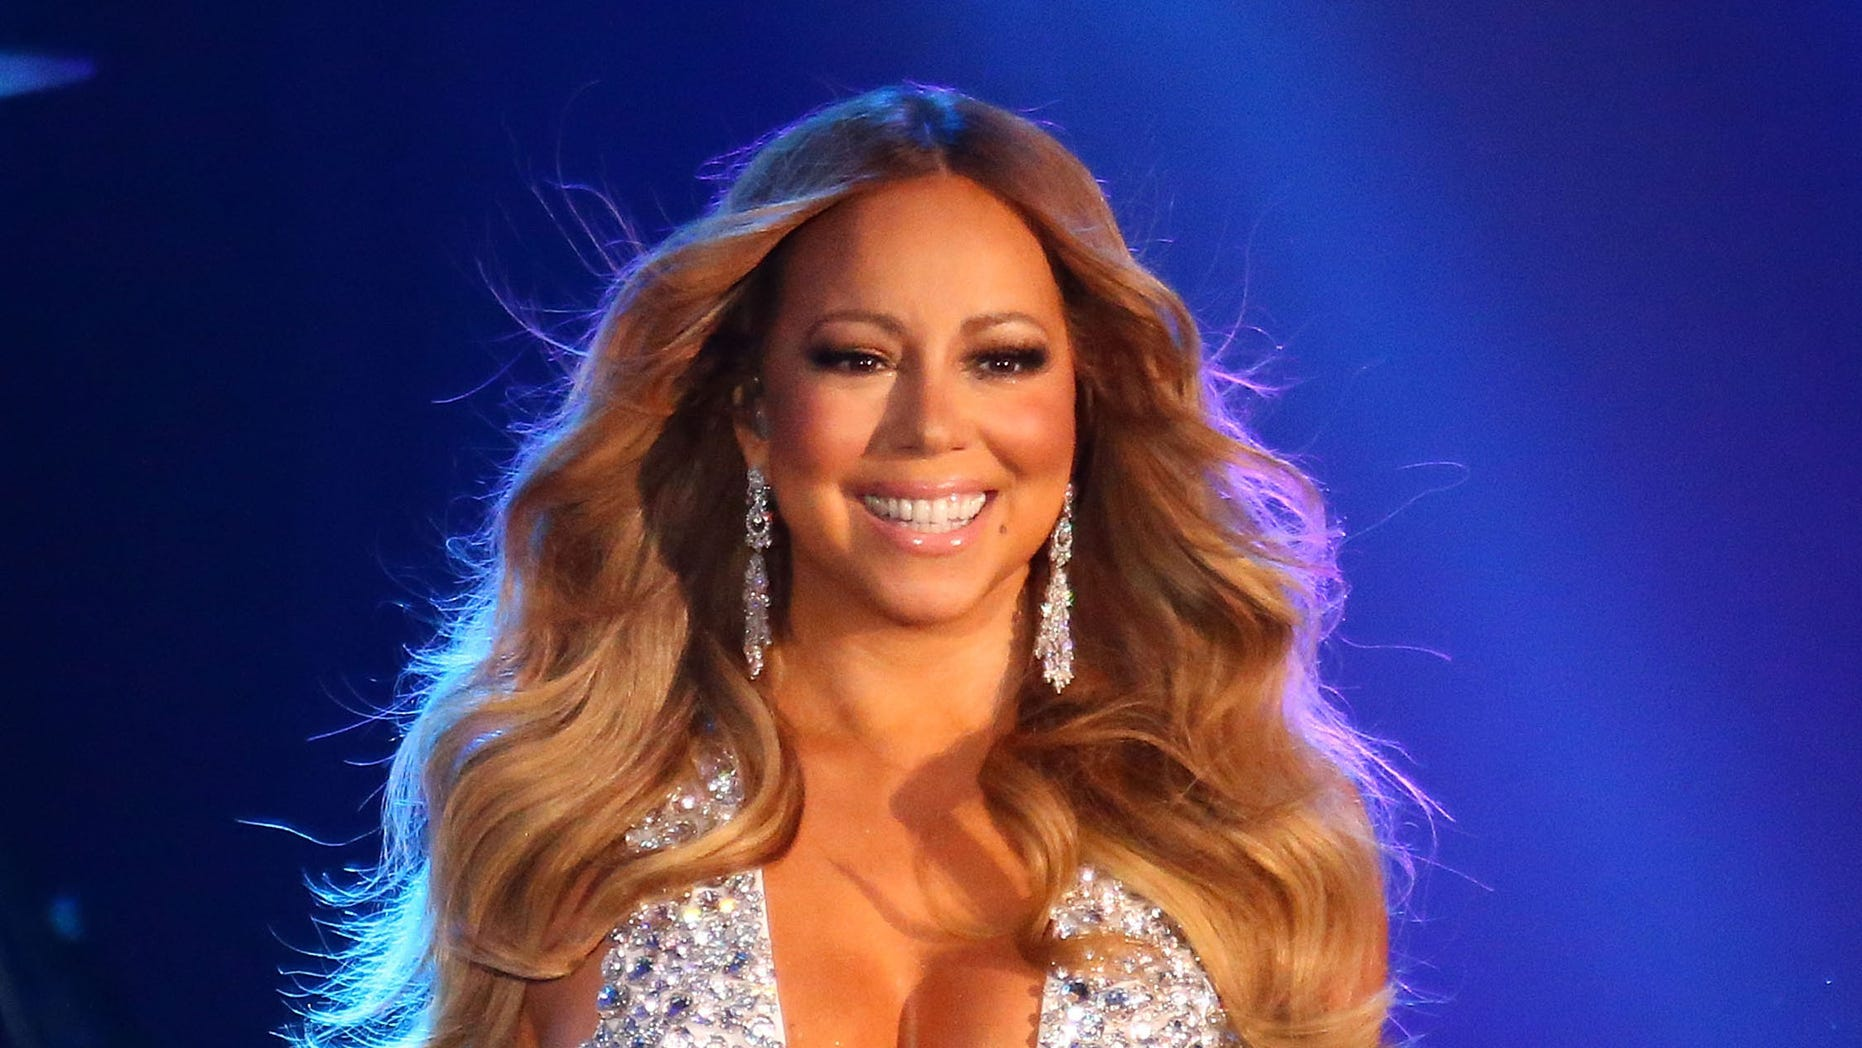 Mariah Carey on December 31, 2015 in Melbourne, Australia.